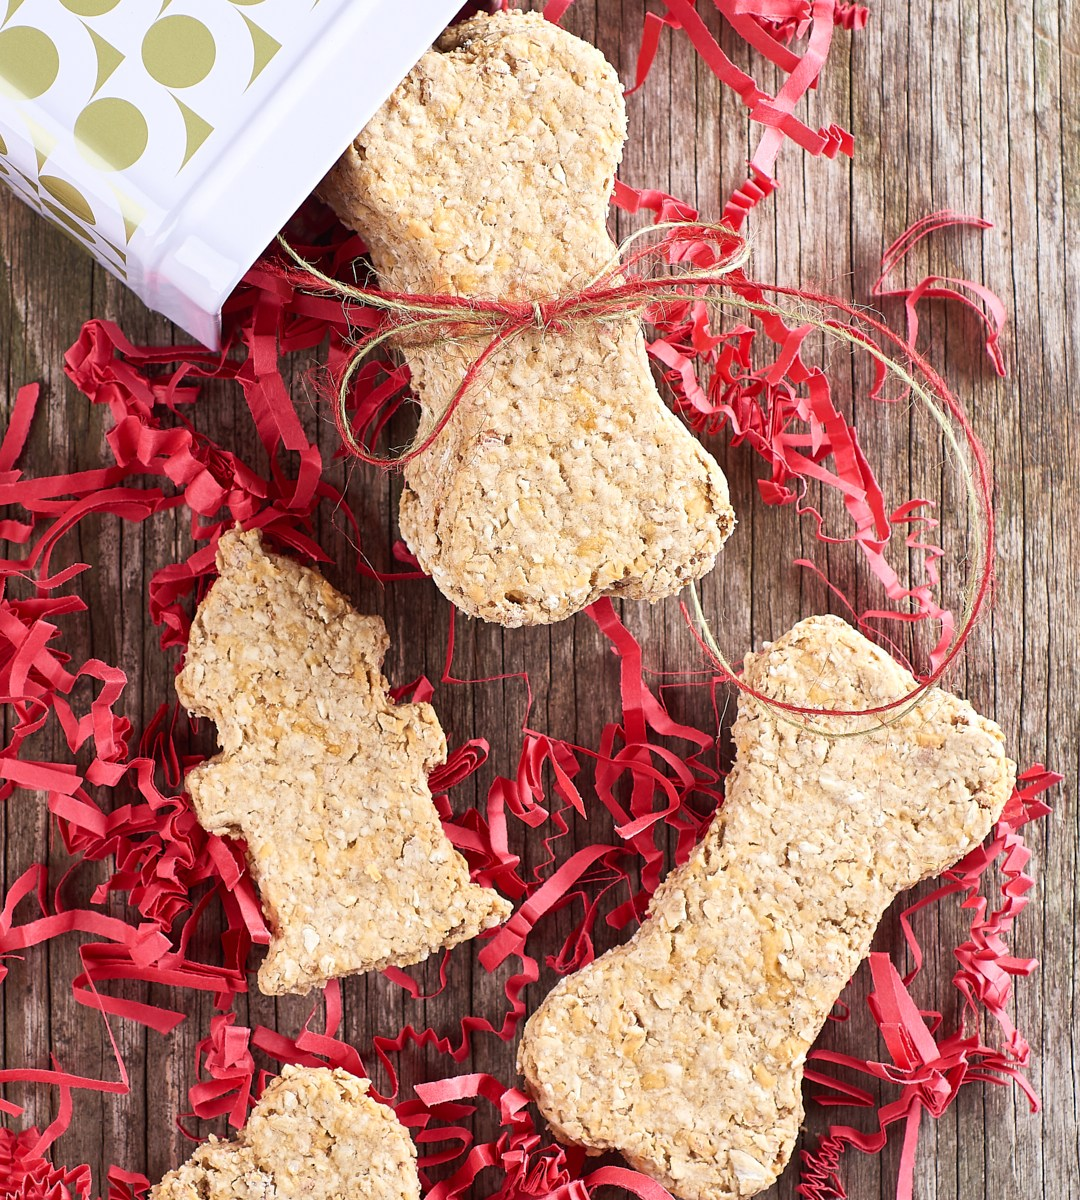 Crunchy Cheddar-Bacon Dog Treats